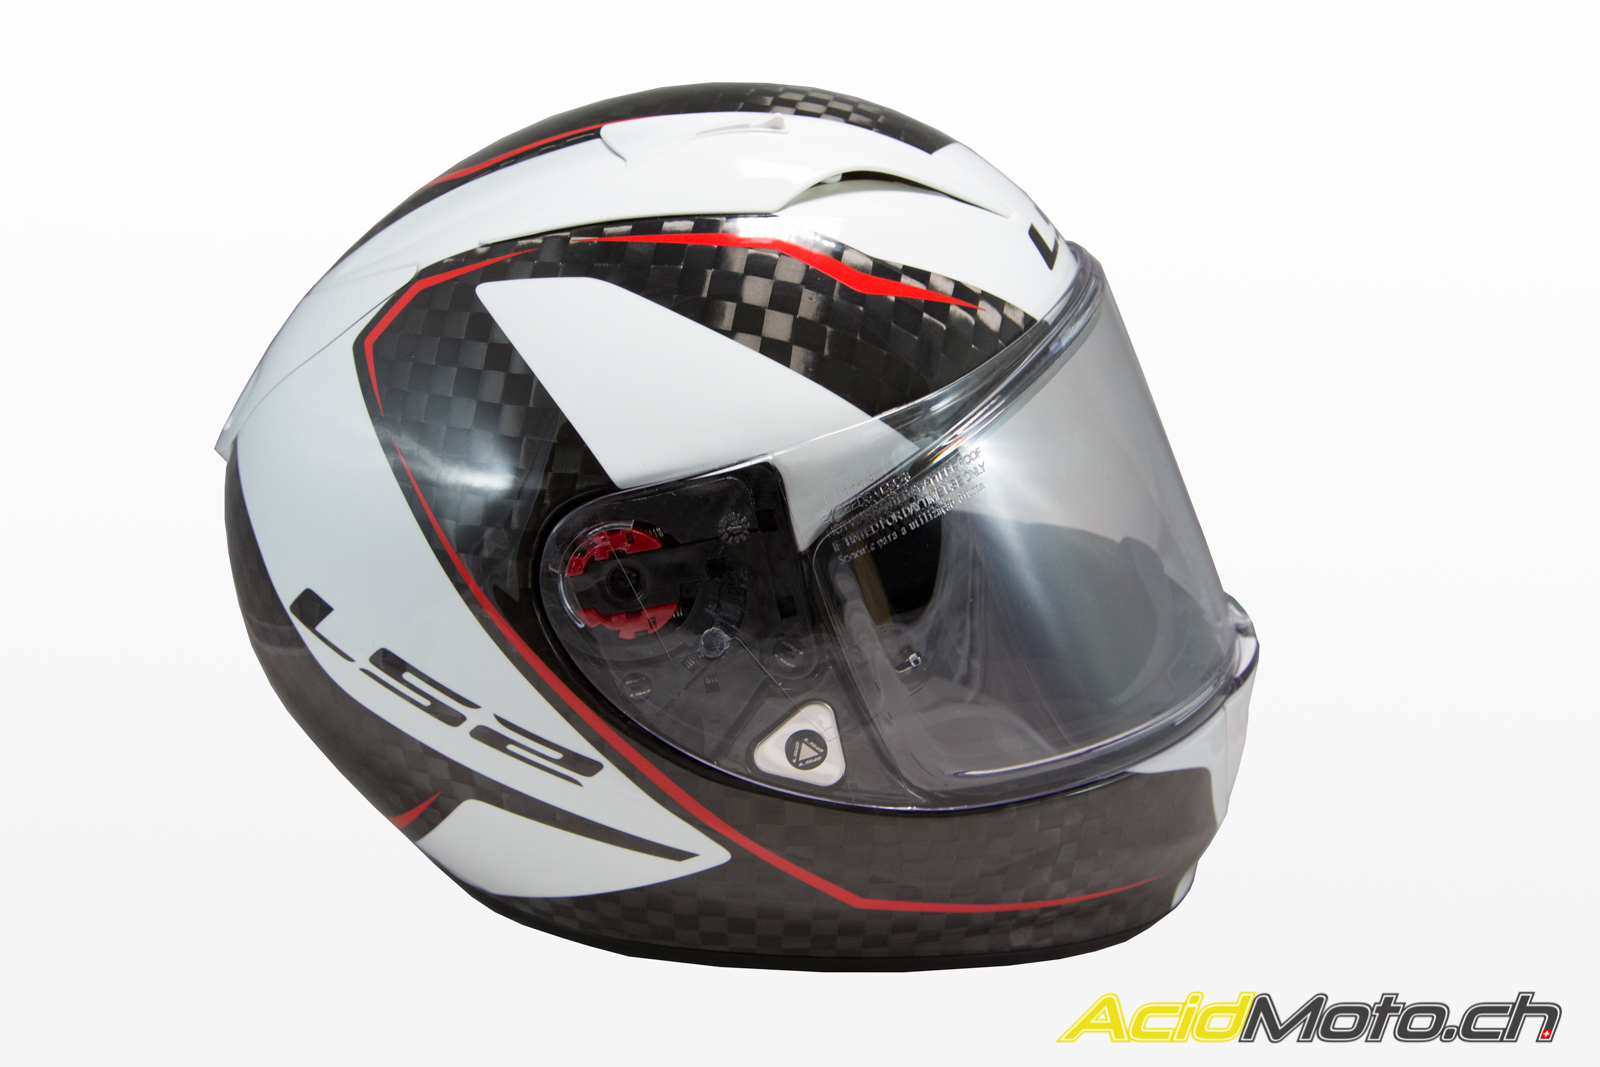 Essai Du Casque Ls2 Arrow C Ff323 Du Racing En Carbone à Prix